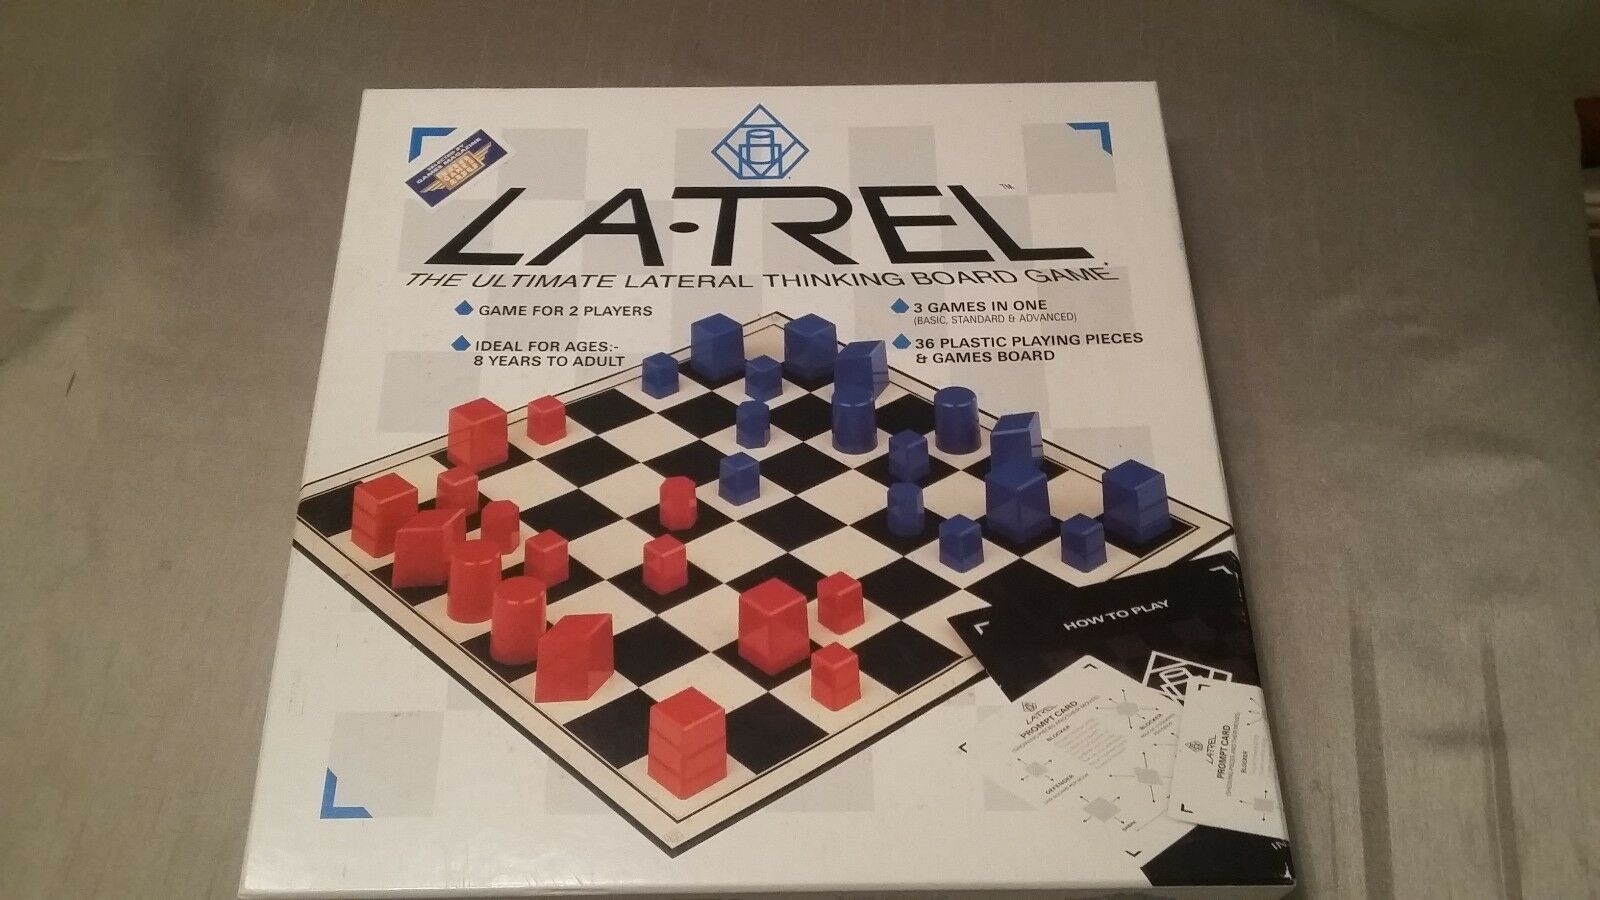 LATREL - The Ultimate Lateral Thinking Board Game by Millennium - CODEDUP